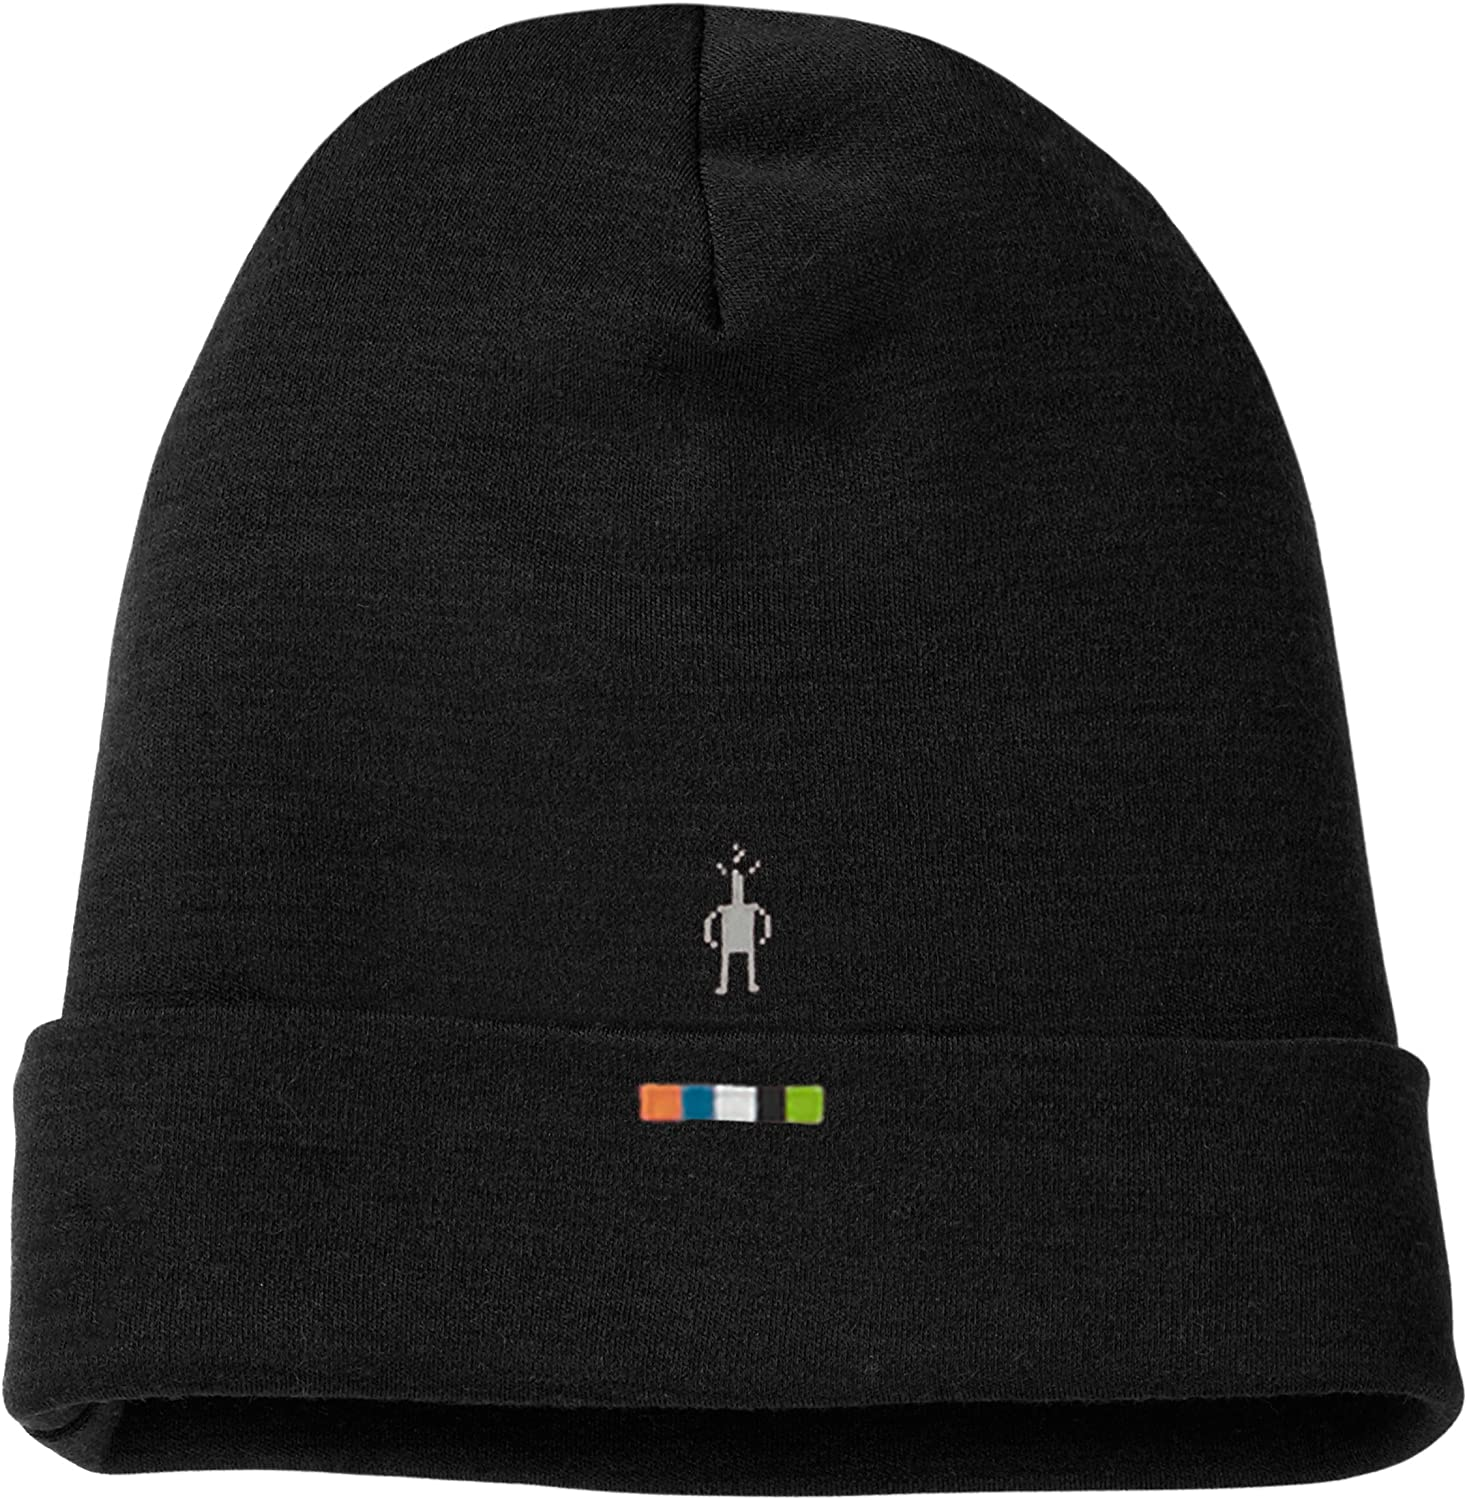 Smartwool Cuffed Beanie Black One Size: Clothing